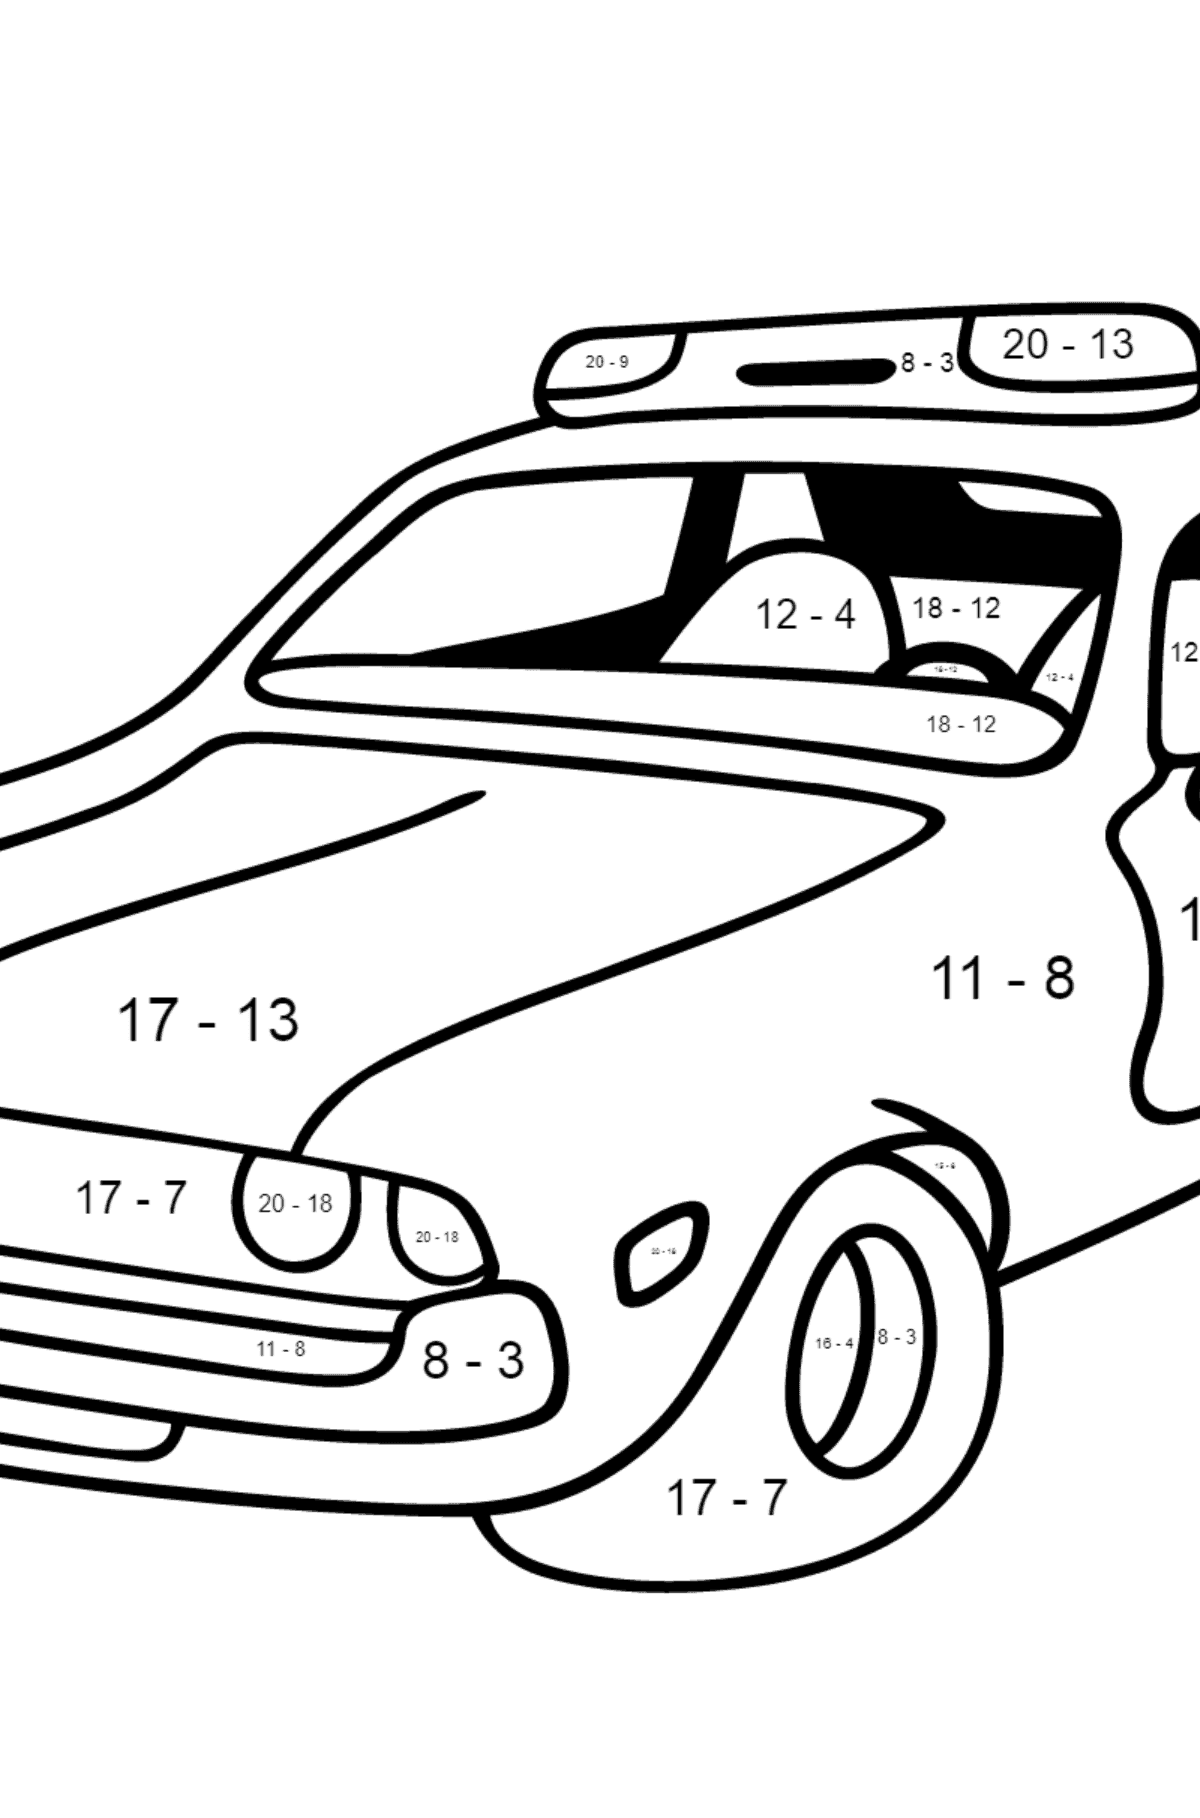 Coloring Page - A Red and White Police Car for Children  - Color by Number Substraction